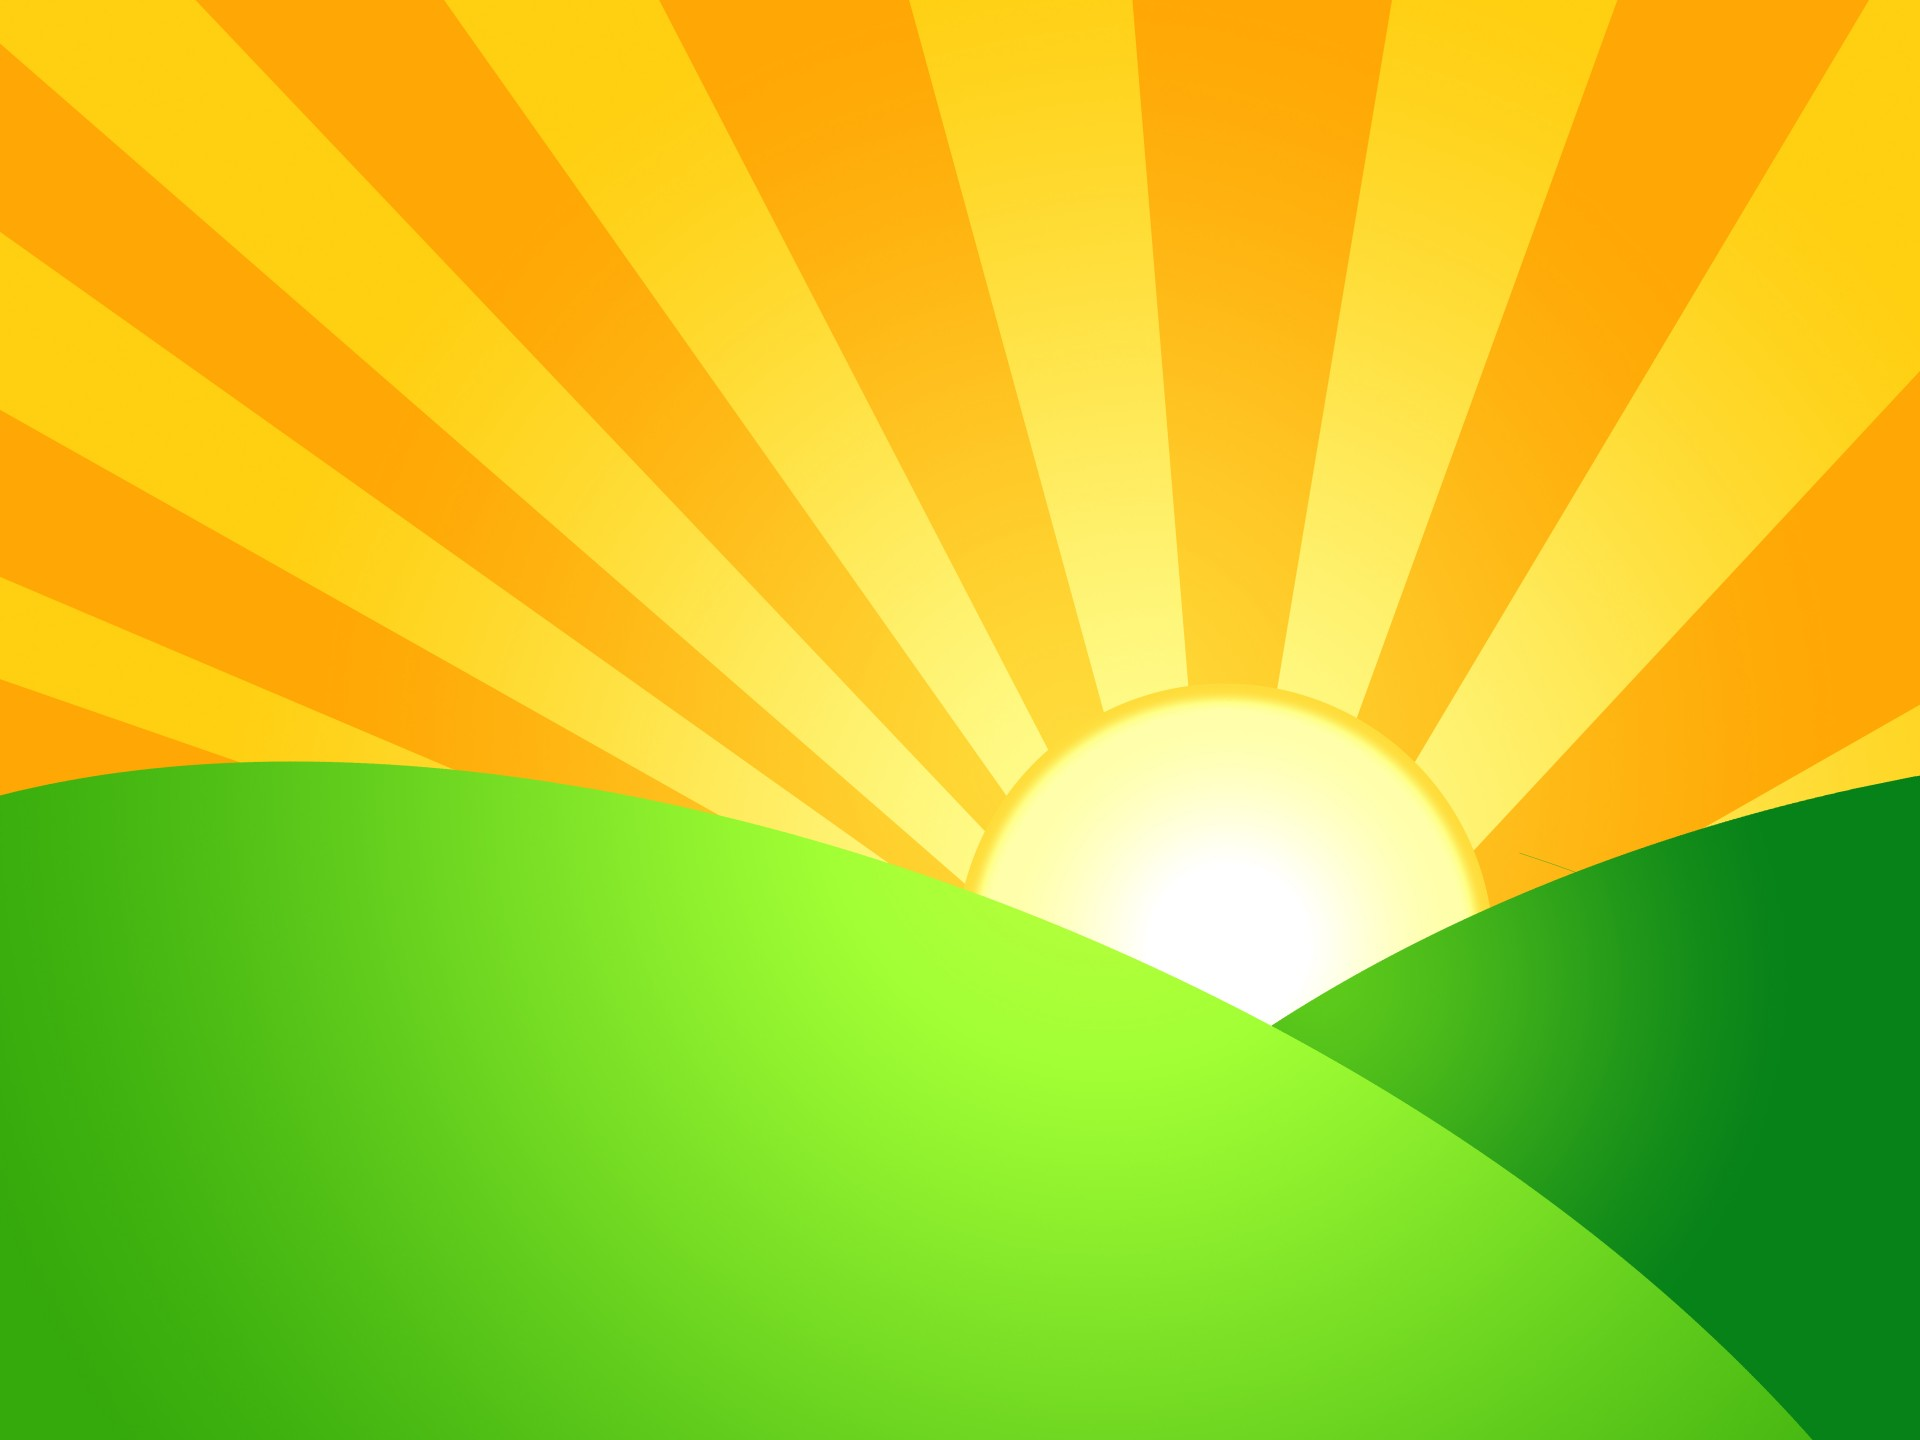 Sunrise Over Green Hills Free Stock Photo Hd Public Domain Pictures